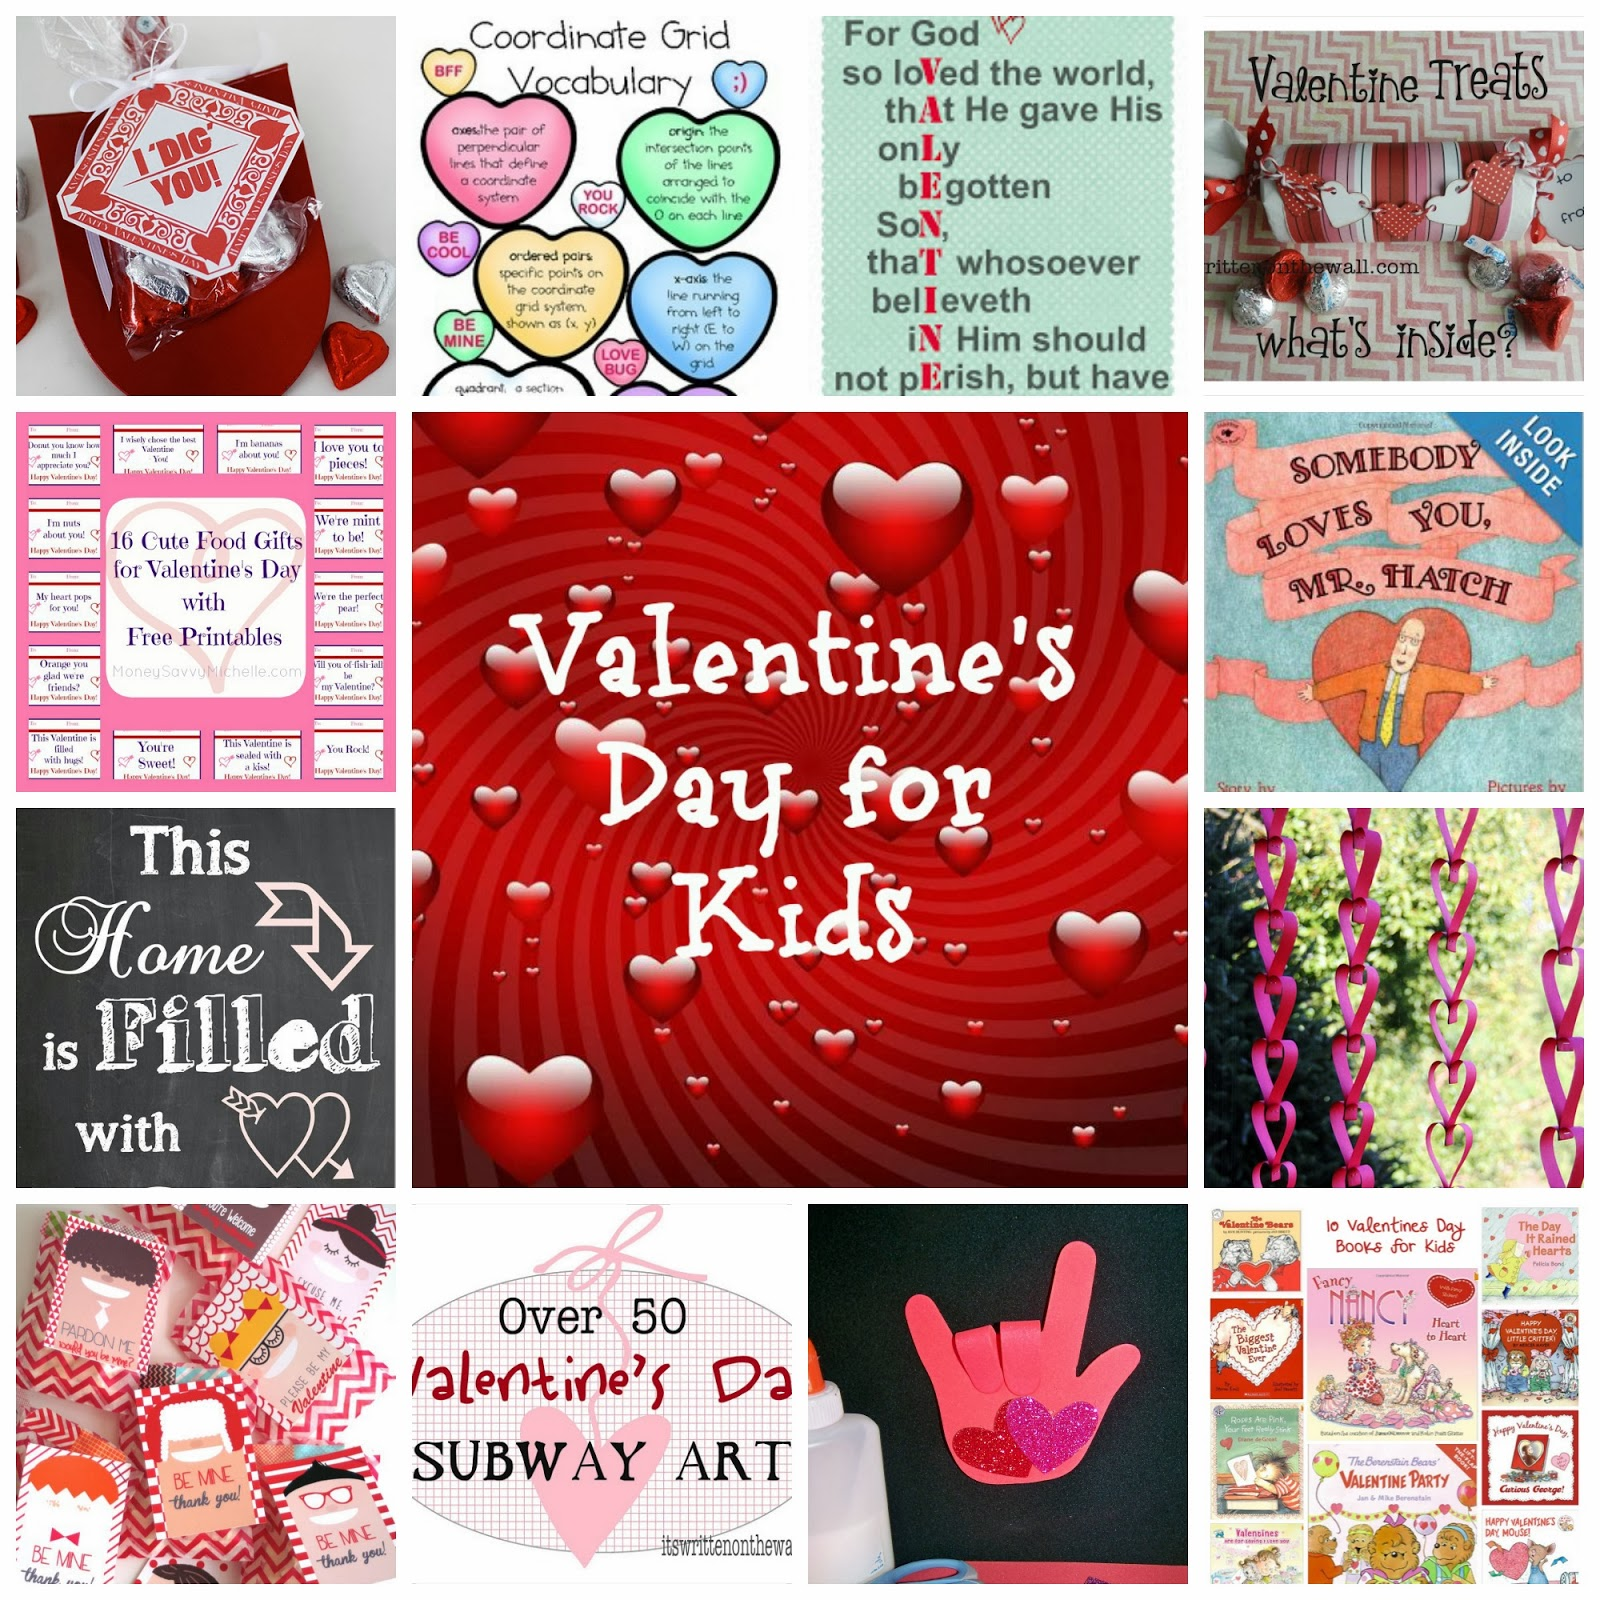 Some Of The Best Things In Life Are Mistakes Valentine S Day Fun For Kids